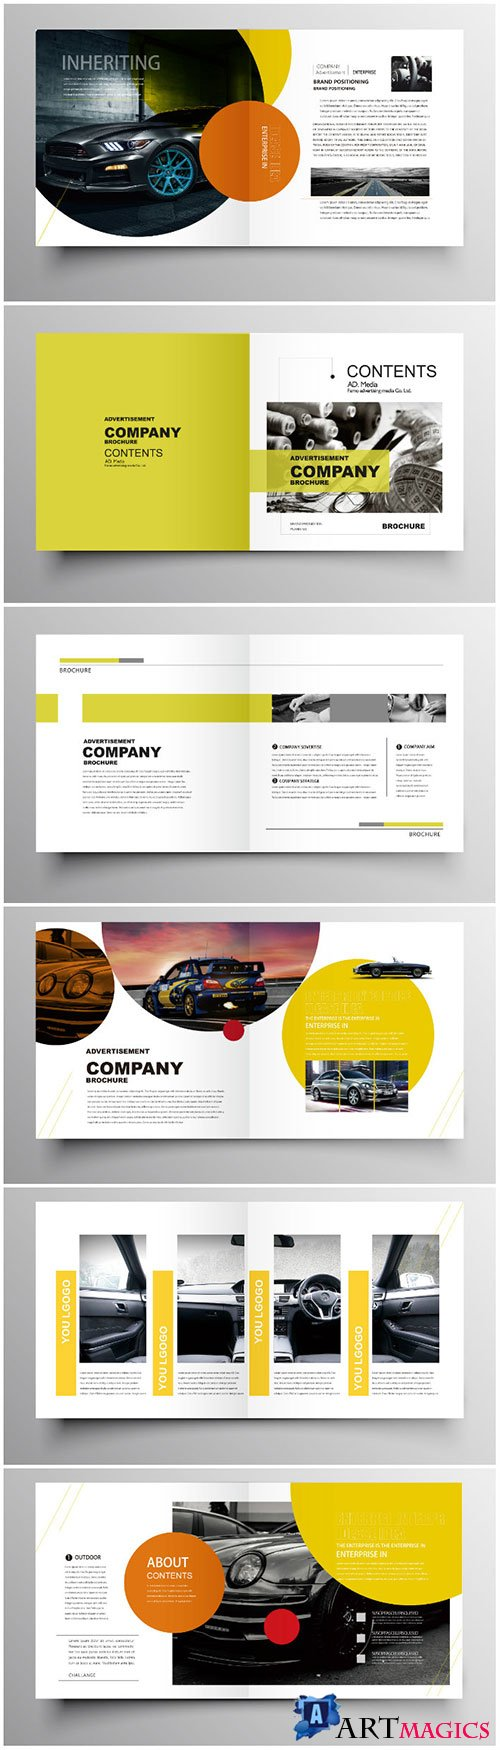 Brochure template vector layout design, corporate business annual report, magazine, flyer mockup # 193